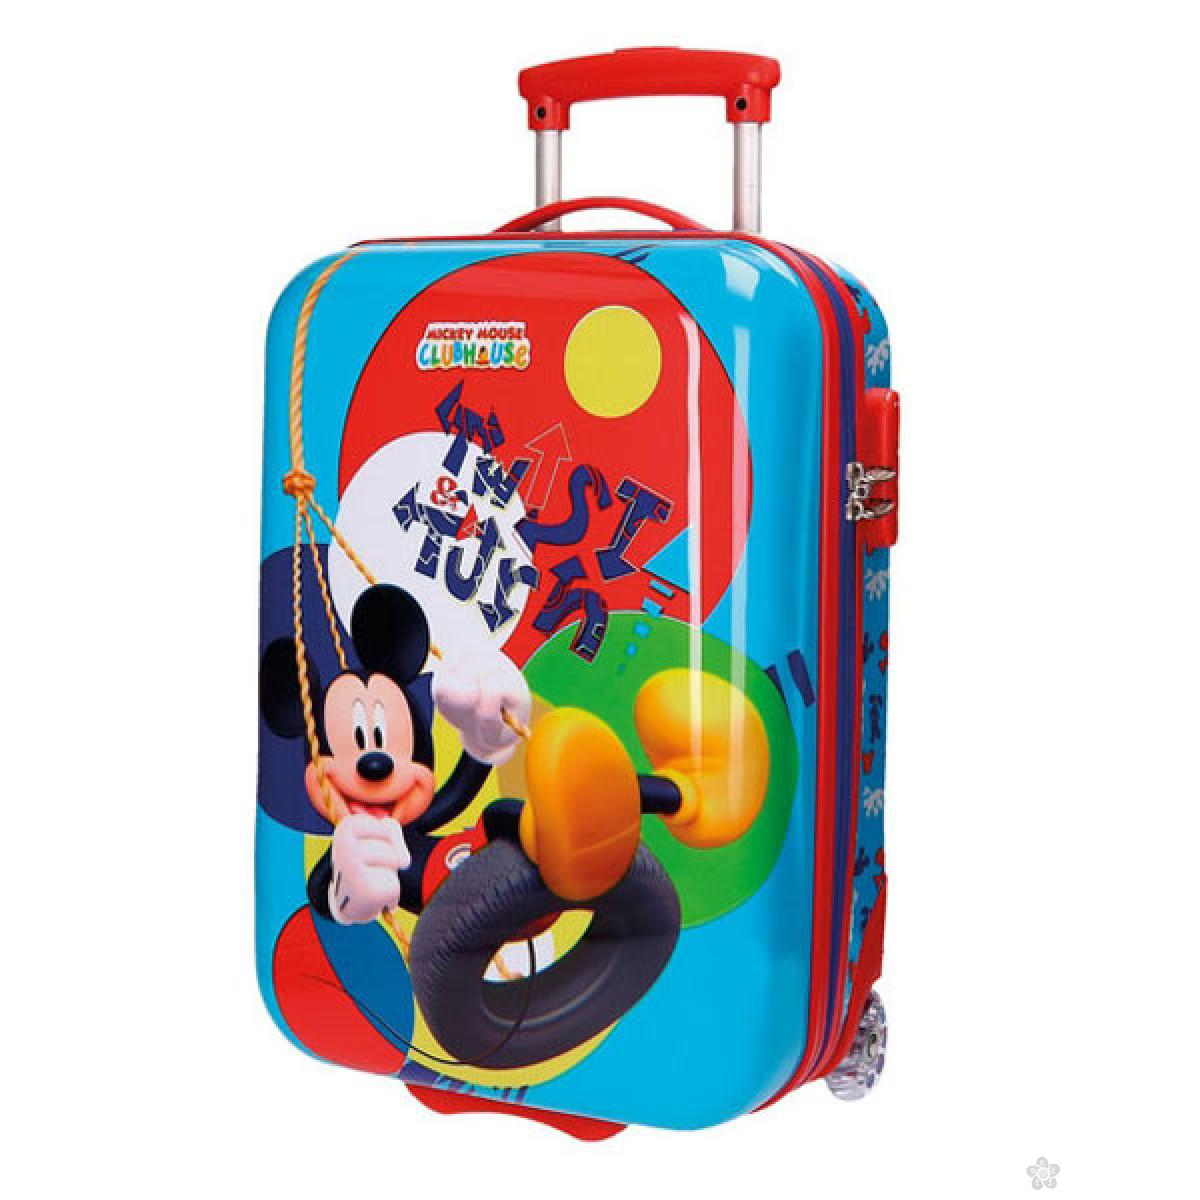 Kofer MIckey Mouse 28.803.51